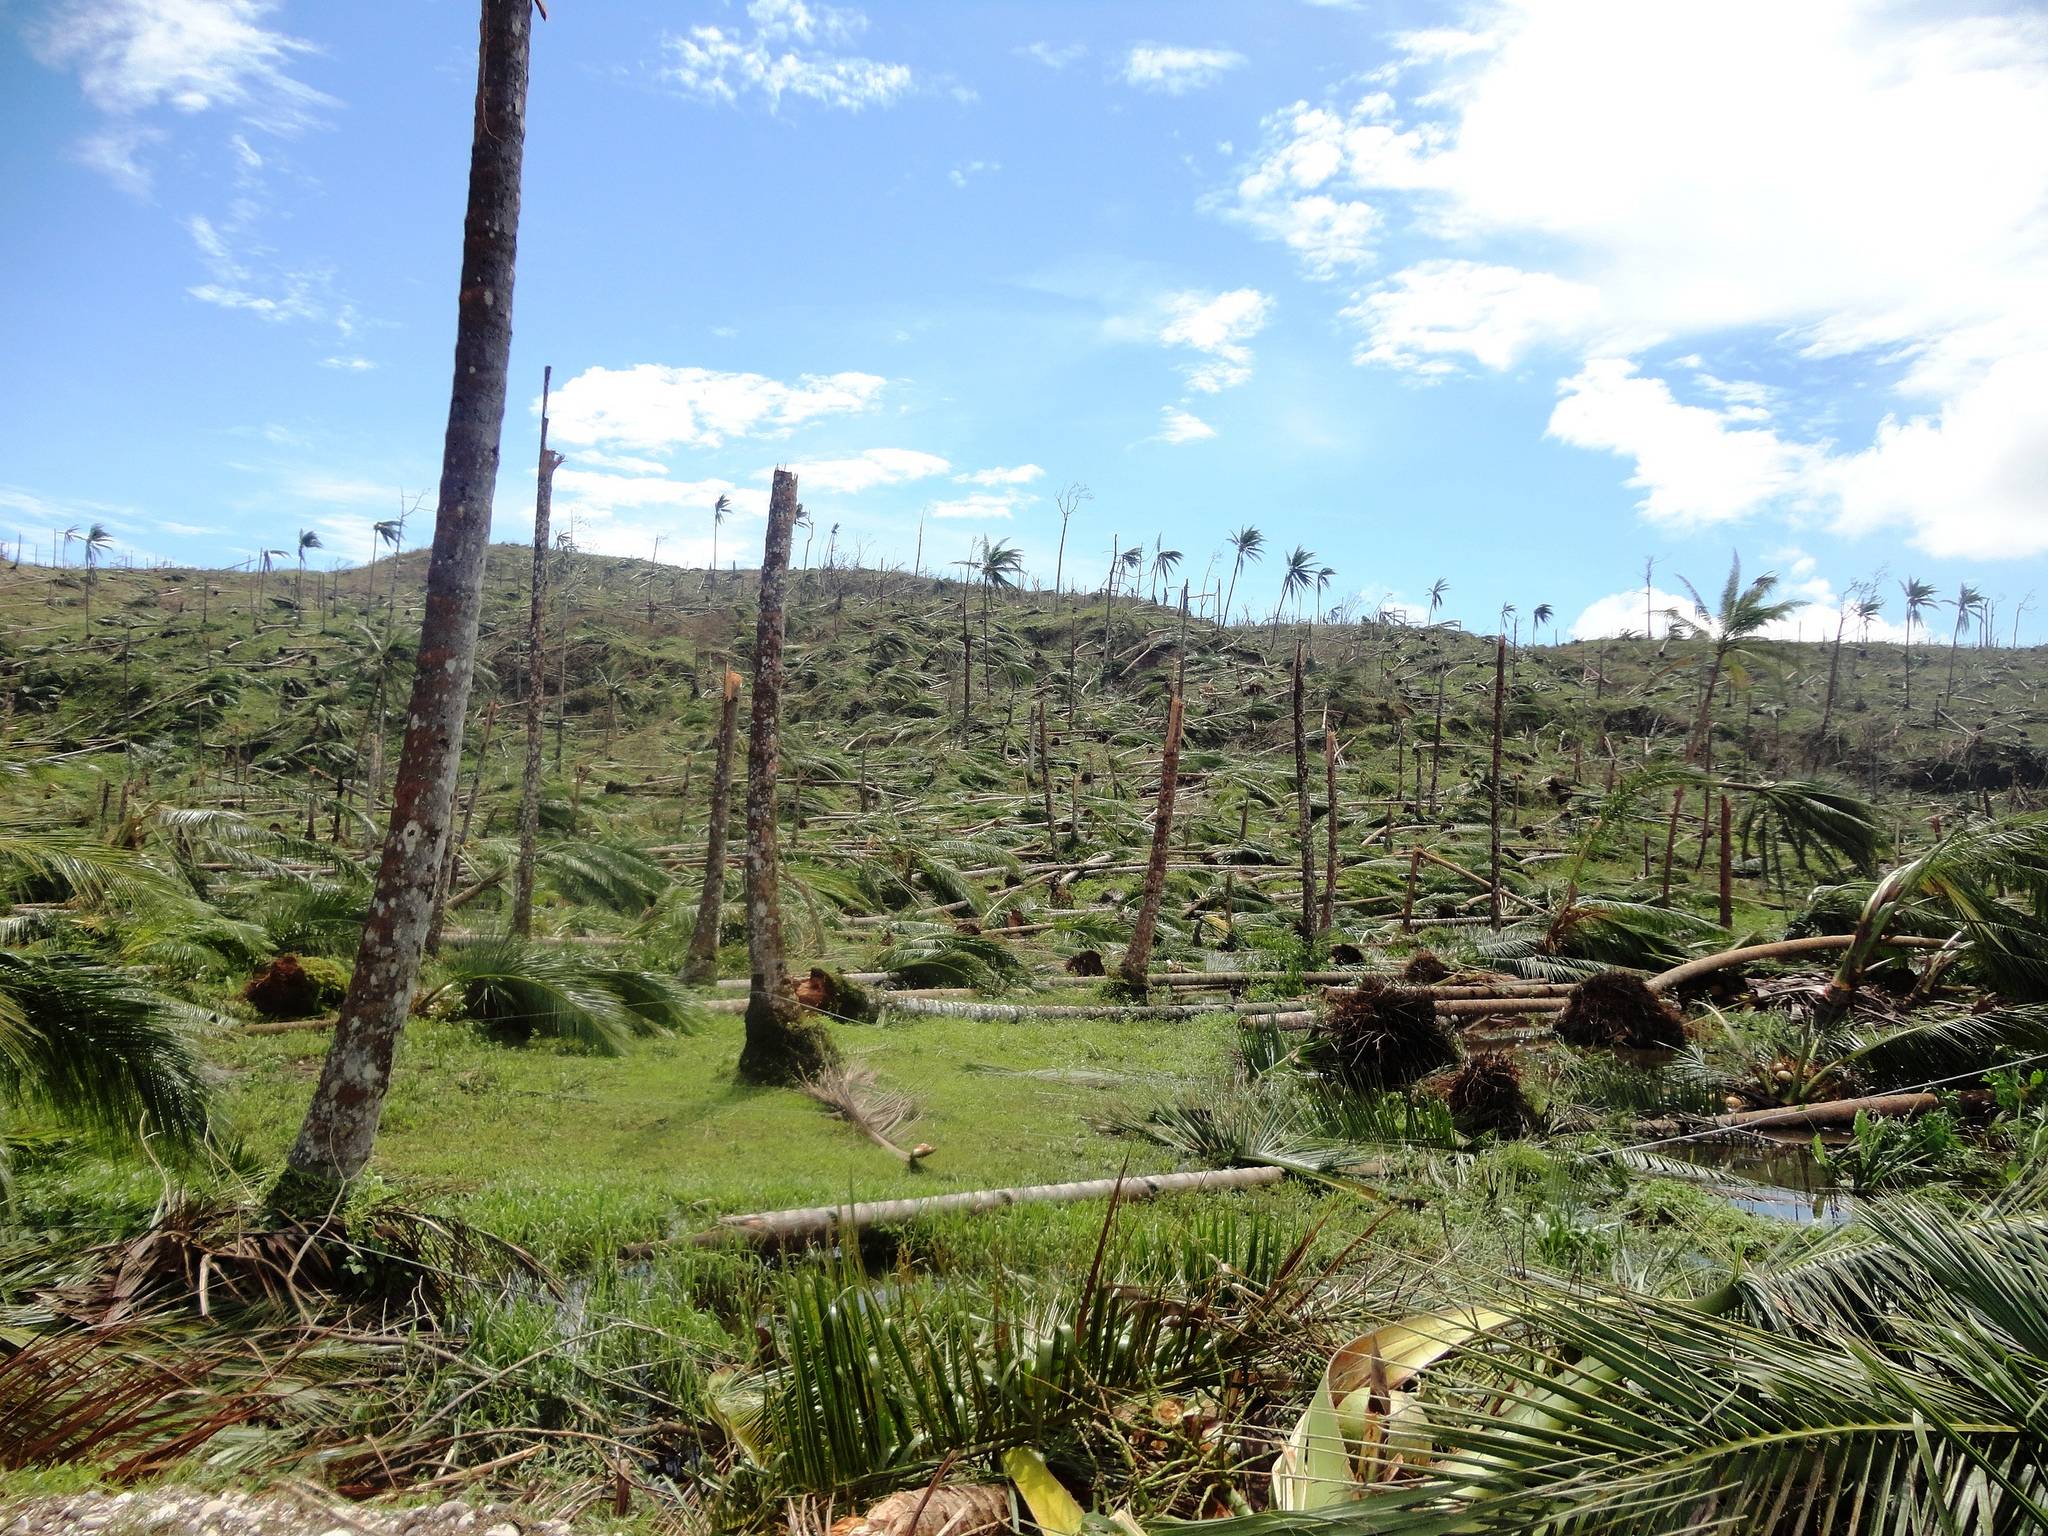 File:Deforestation in the wake of Typhoon Bopha in Cateel ...